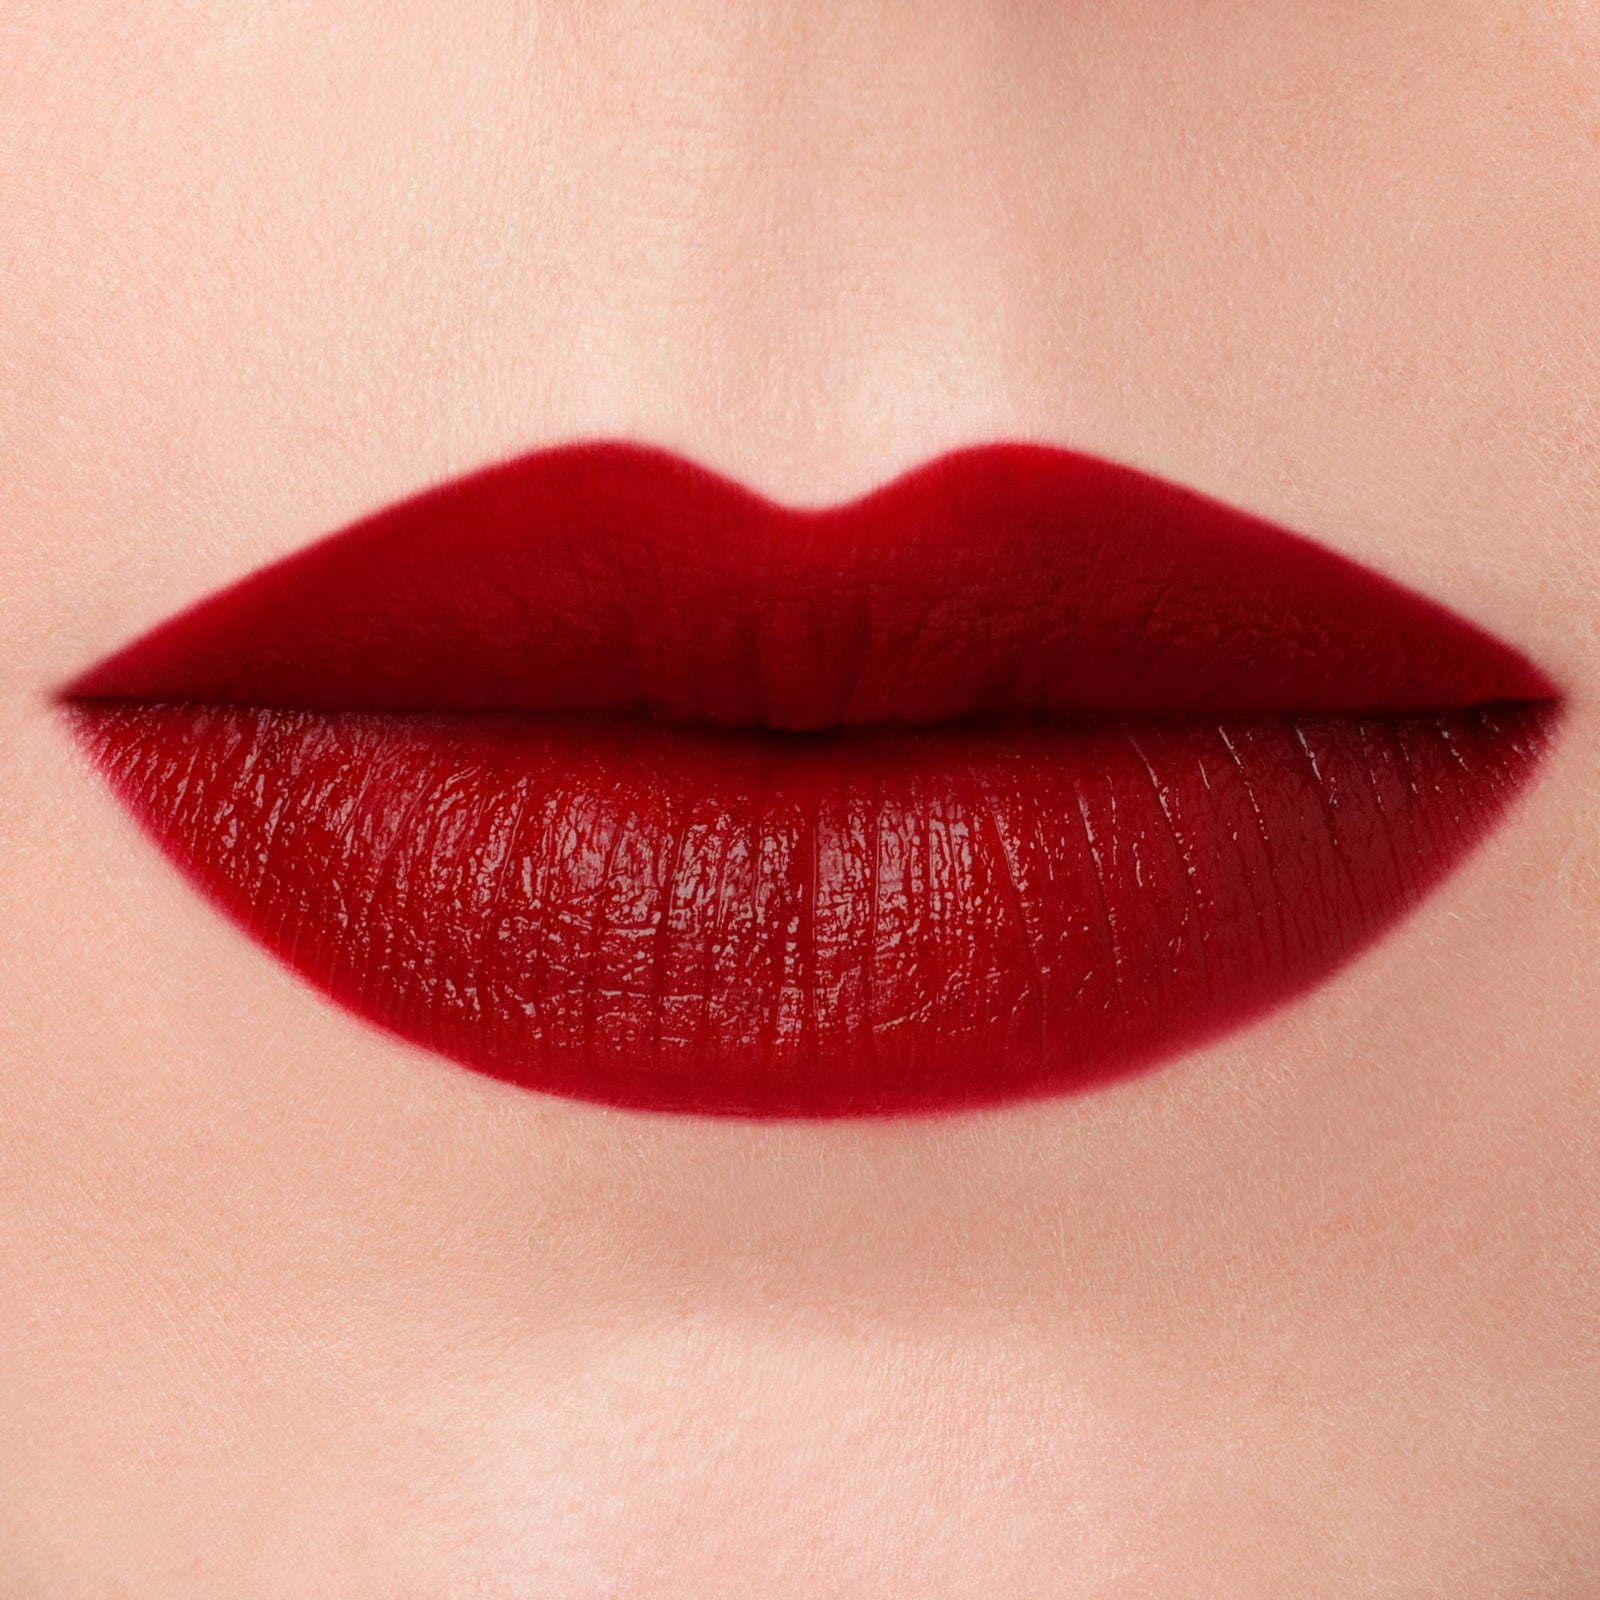 blood red lipstick